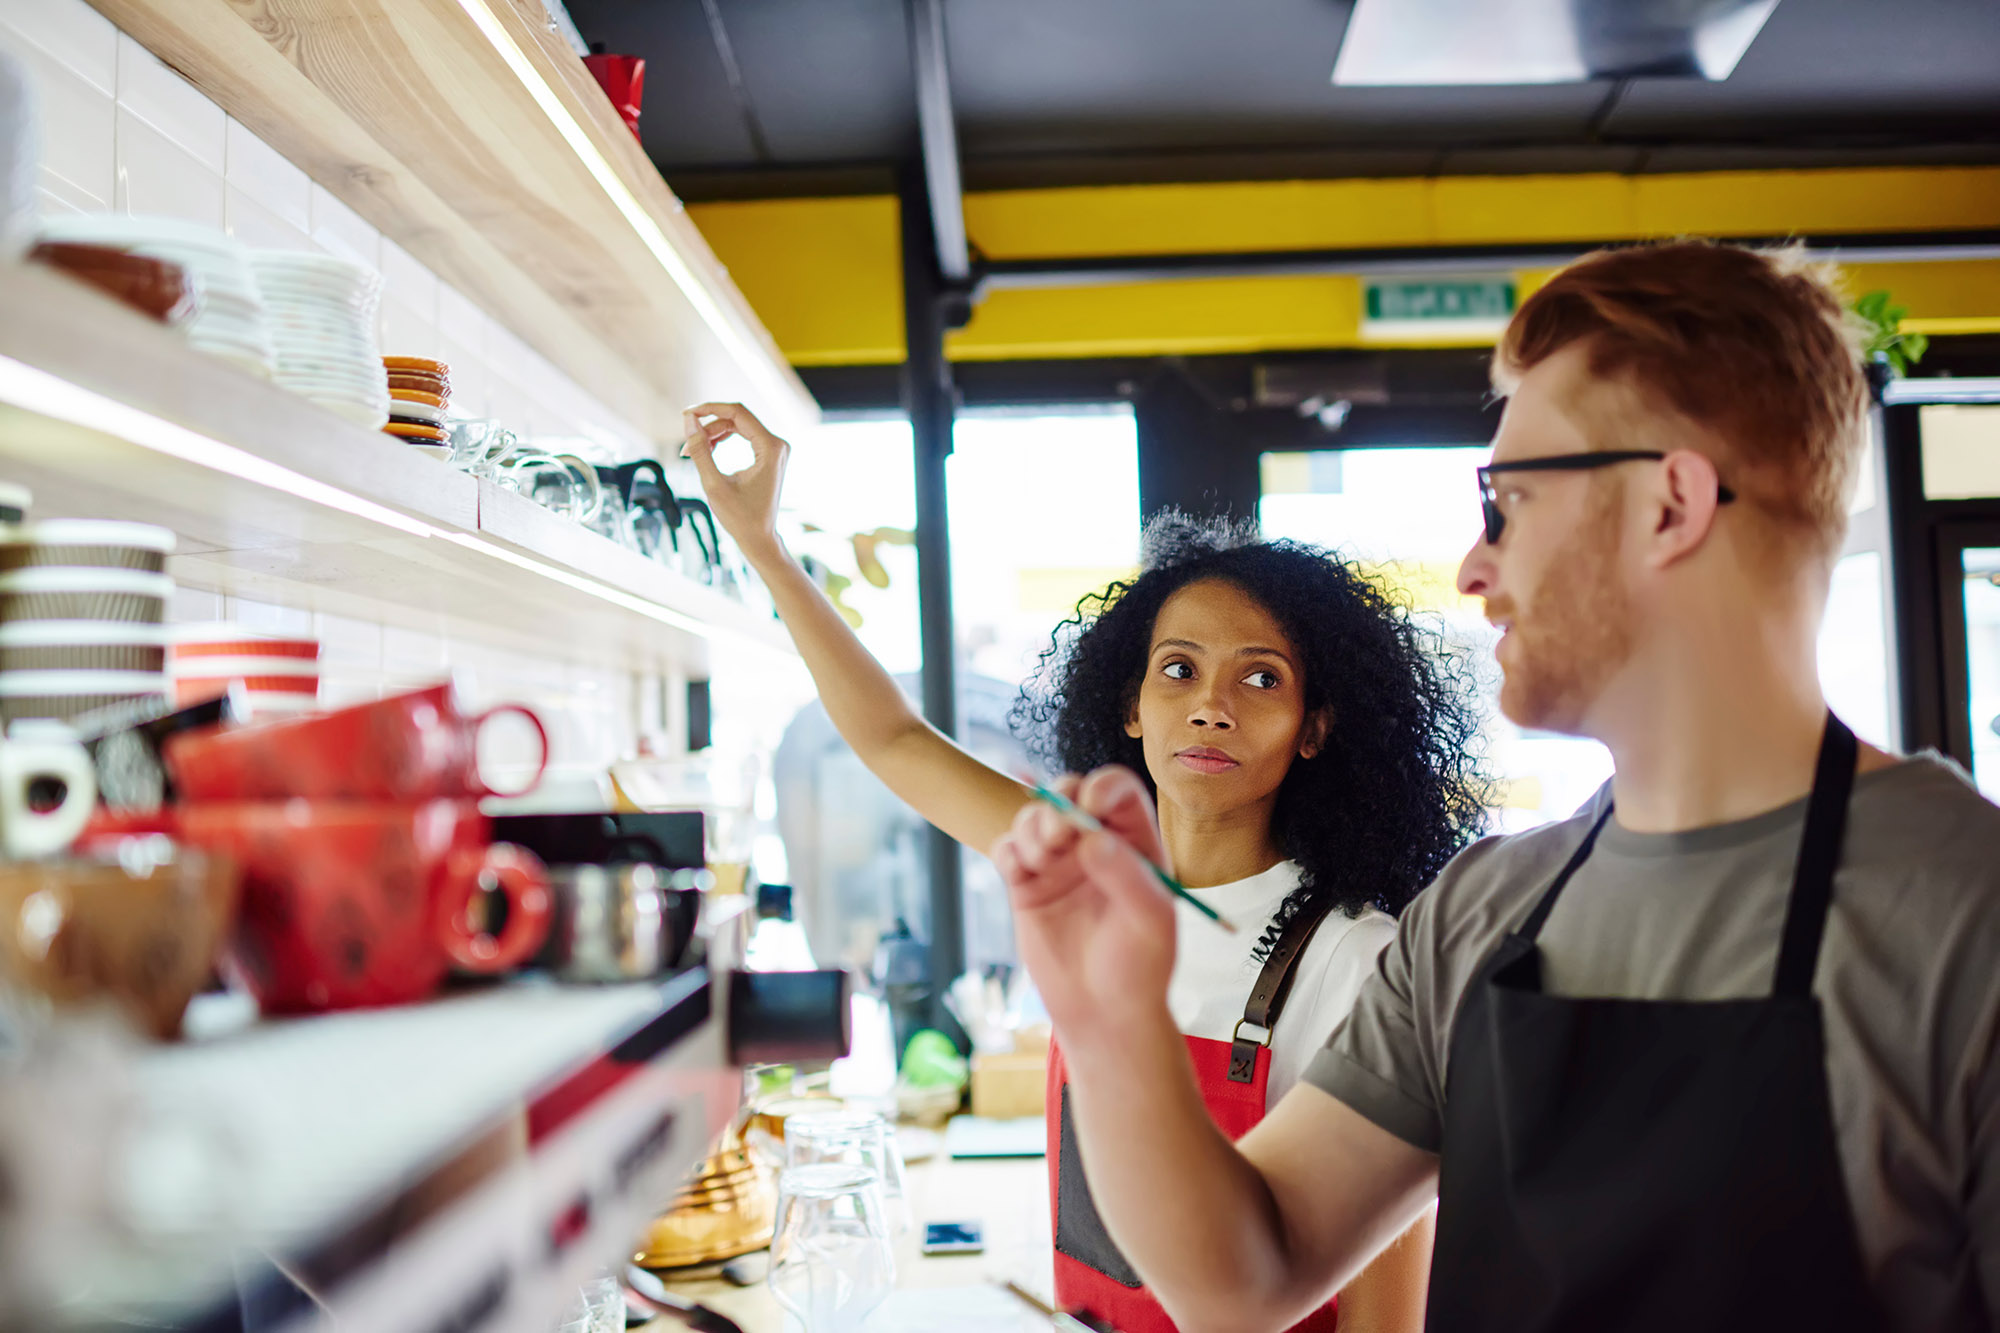 Two restaurant employees discuss inventory while looking at a shelf